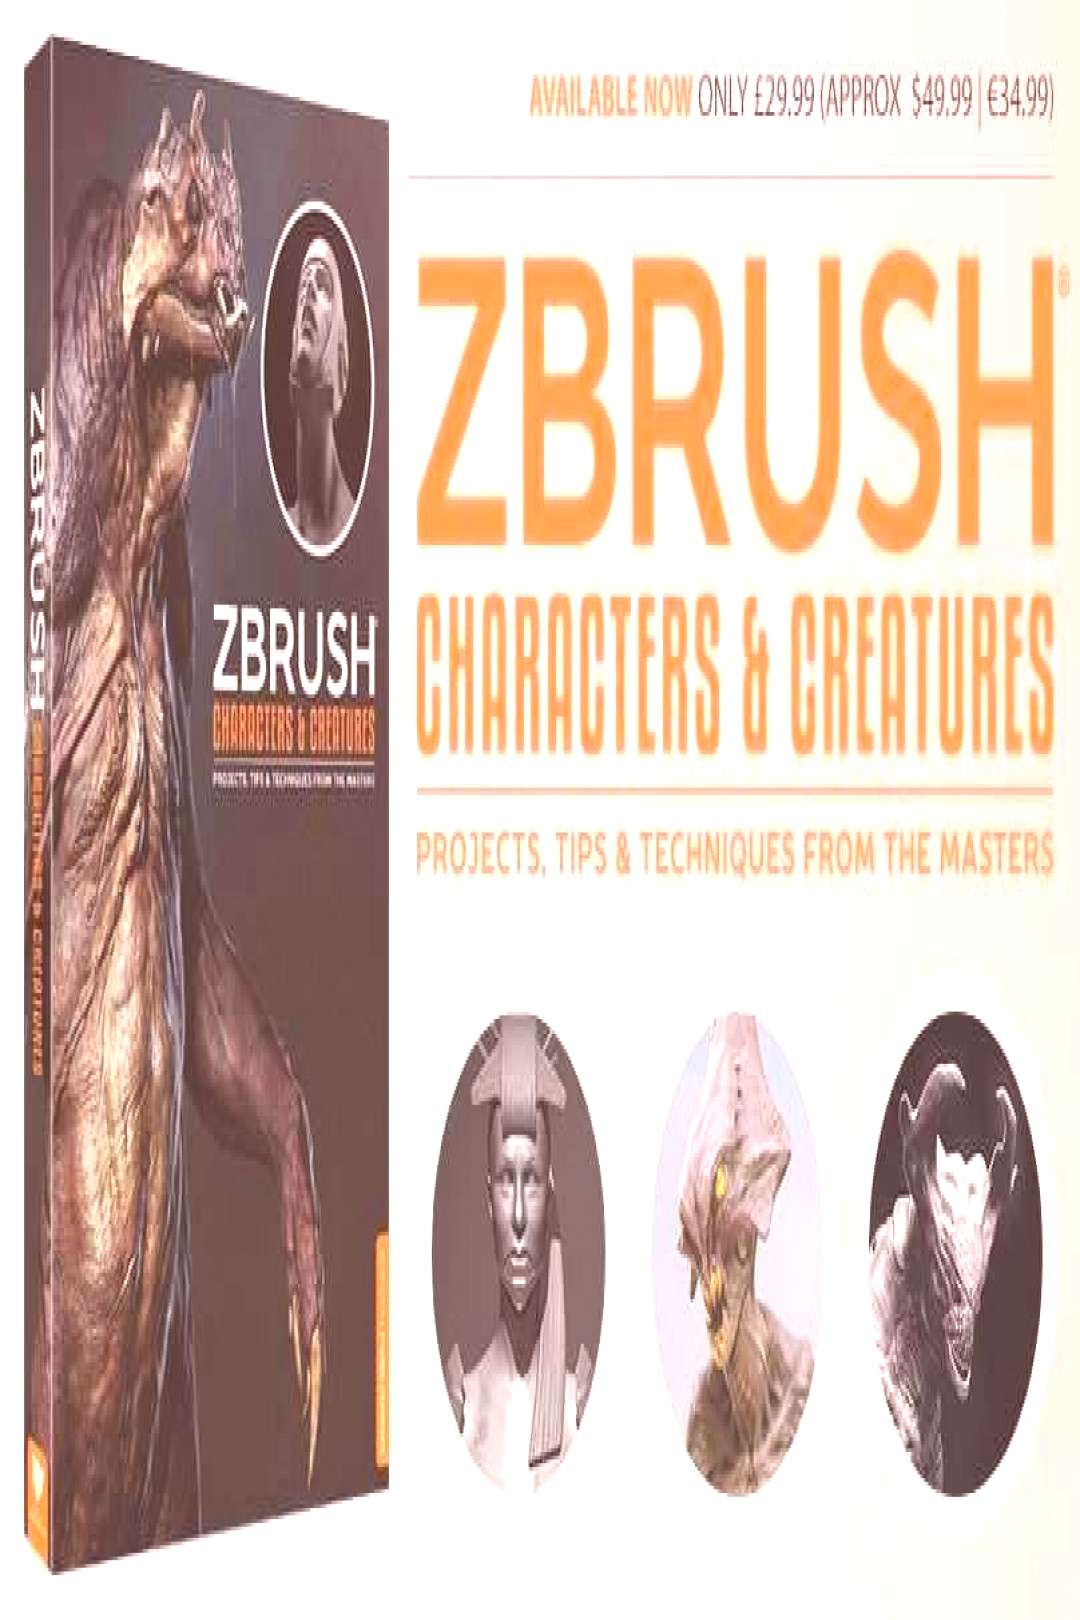 Zbrush Characters Virtual reality - -You can find Zbrush and more on our website.Zbrush Characters